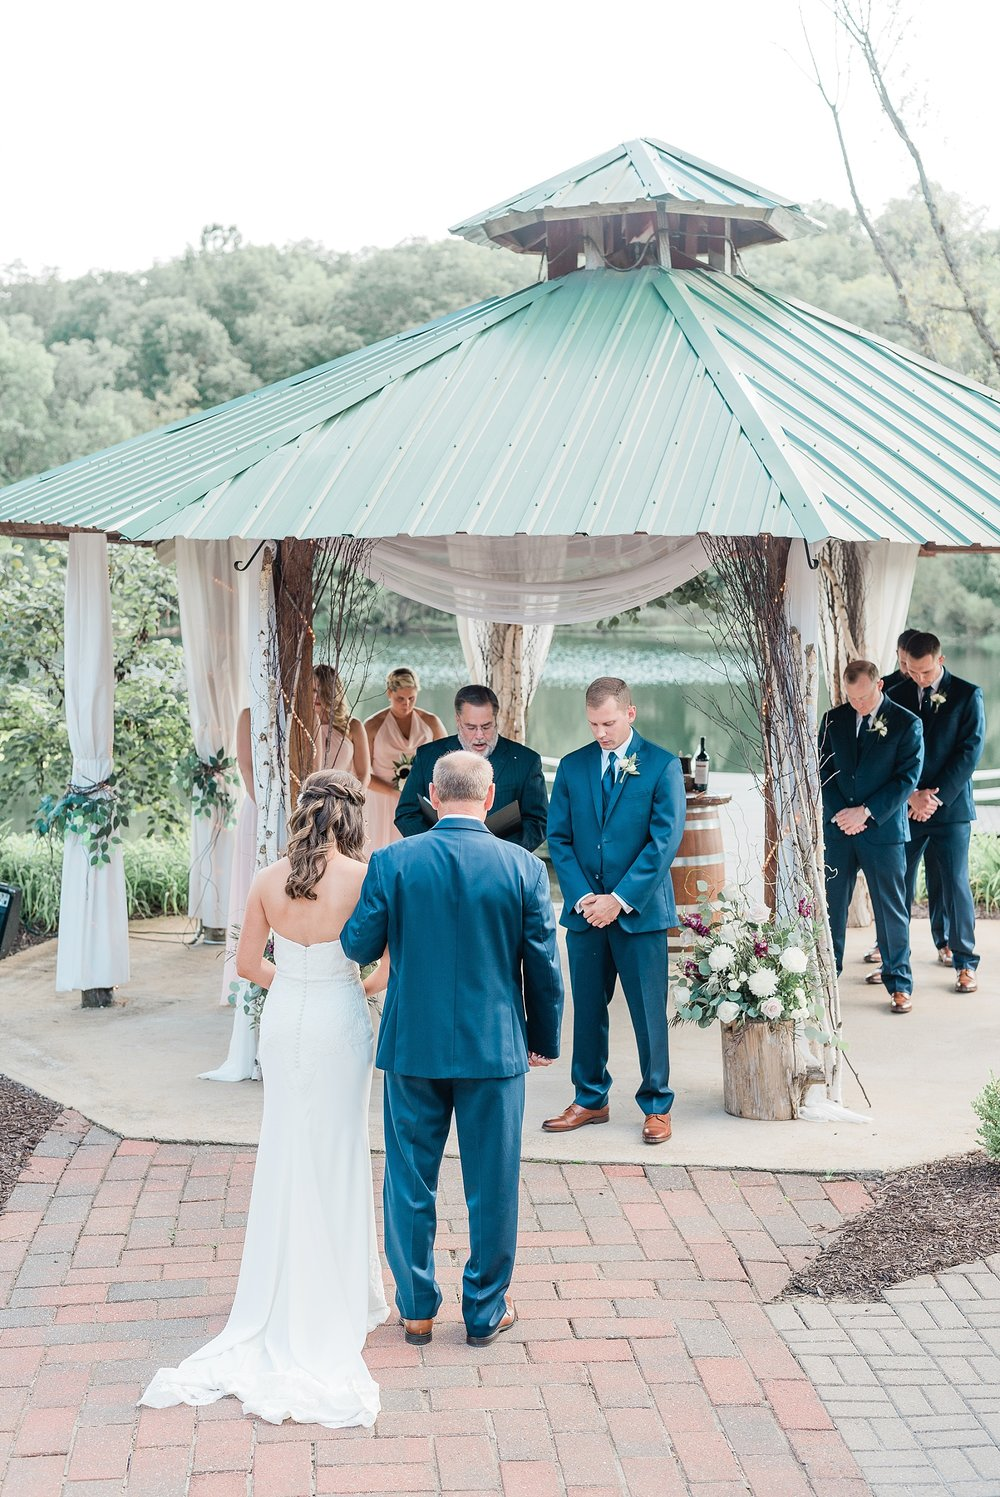 Romantic Summer Sunset Wedding Ceremony at Little Piney Lodge St. Louis Missouri by Kelsi Kliethermes Photography Fine Art Photographer_0054.jpg